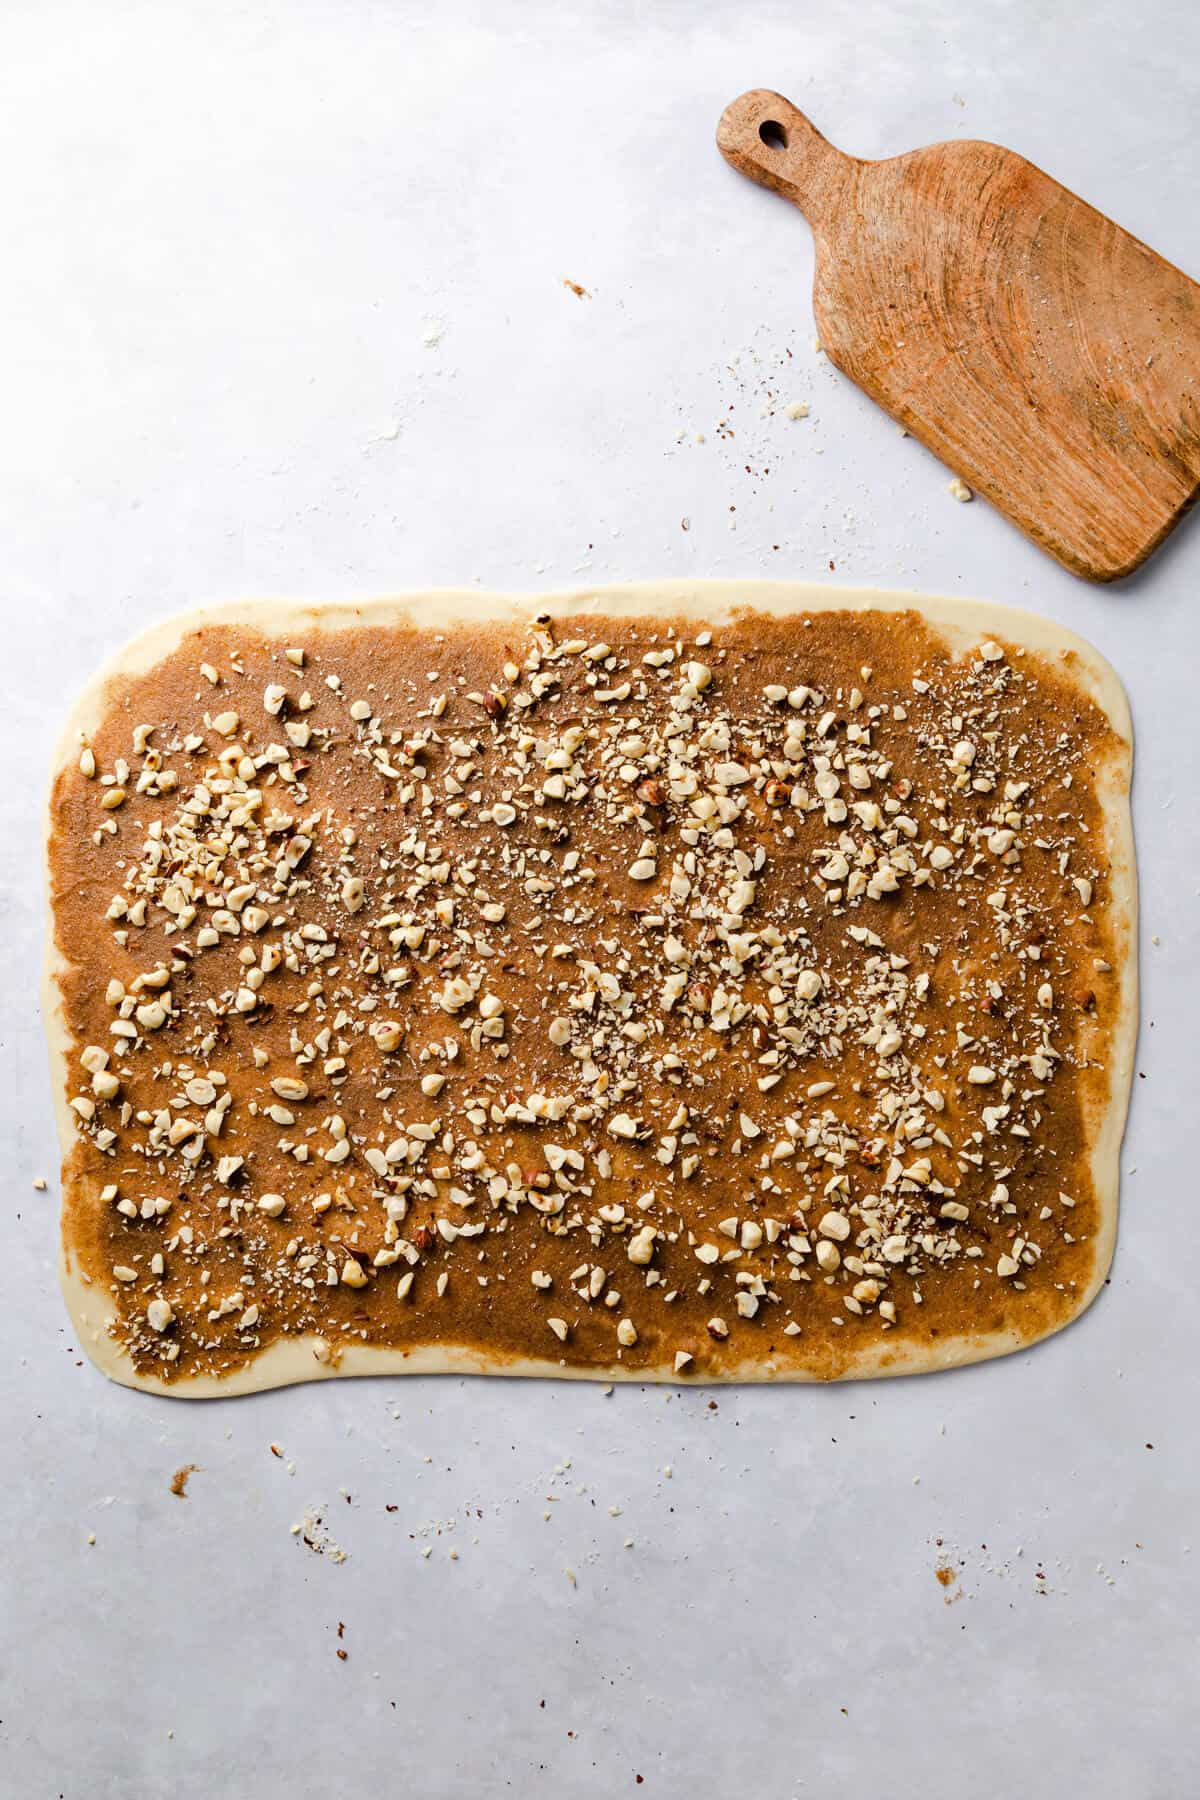 top view of dough rectangle covered in cinnamon butter and chopped hazelnuts